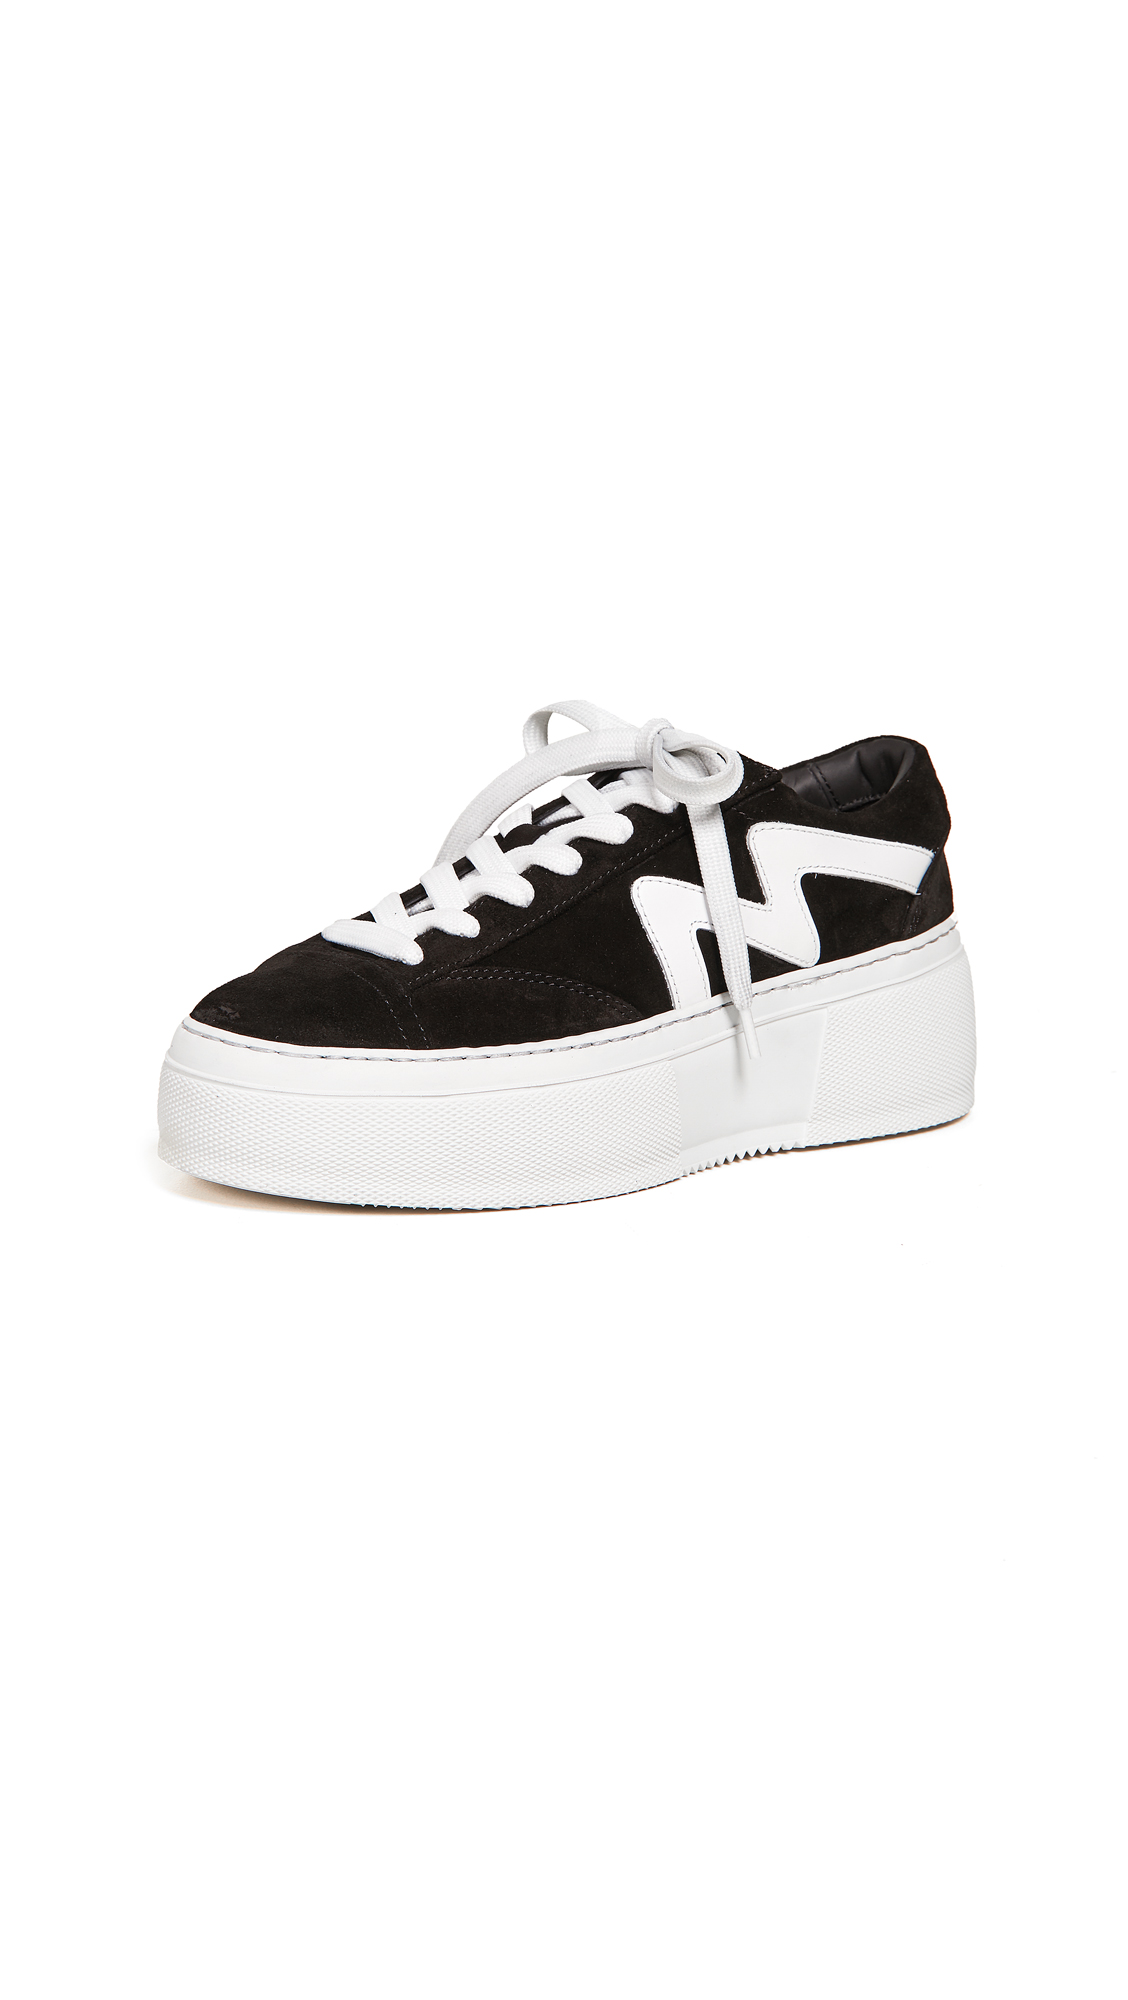 MSGM Lace Up Cupsole Sneakers - Black/White